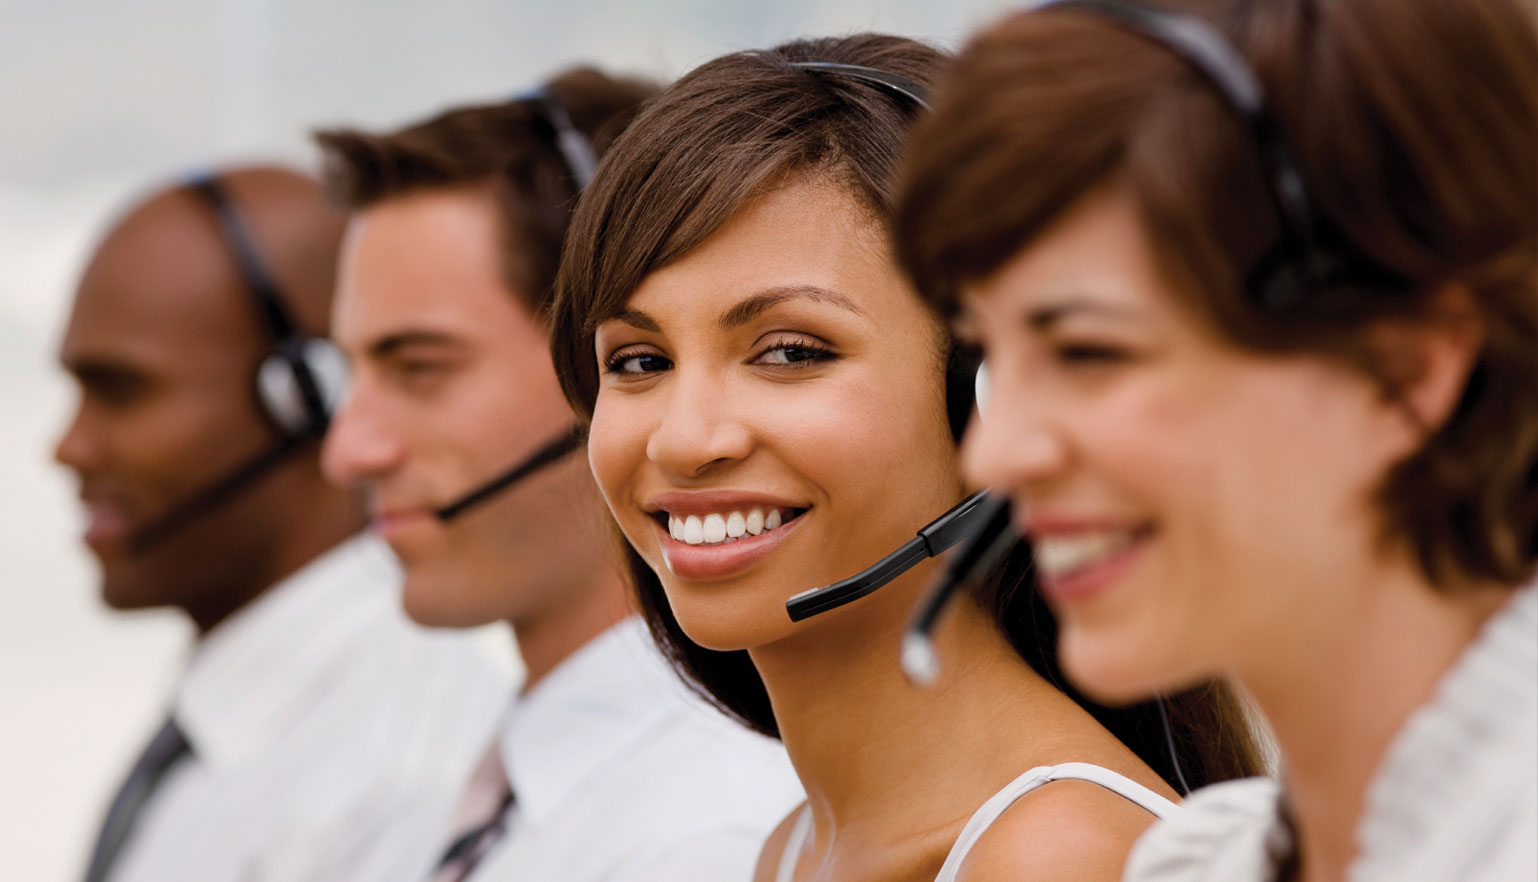 4 smiling customer services reps on headsets